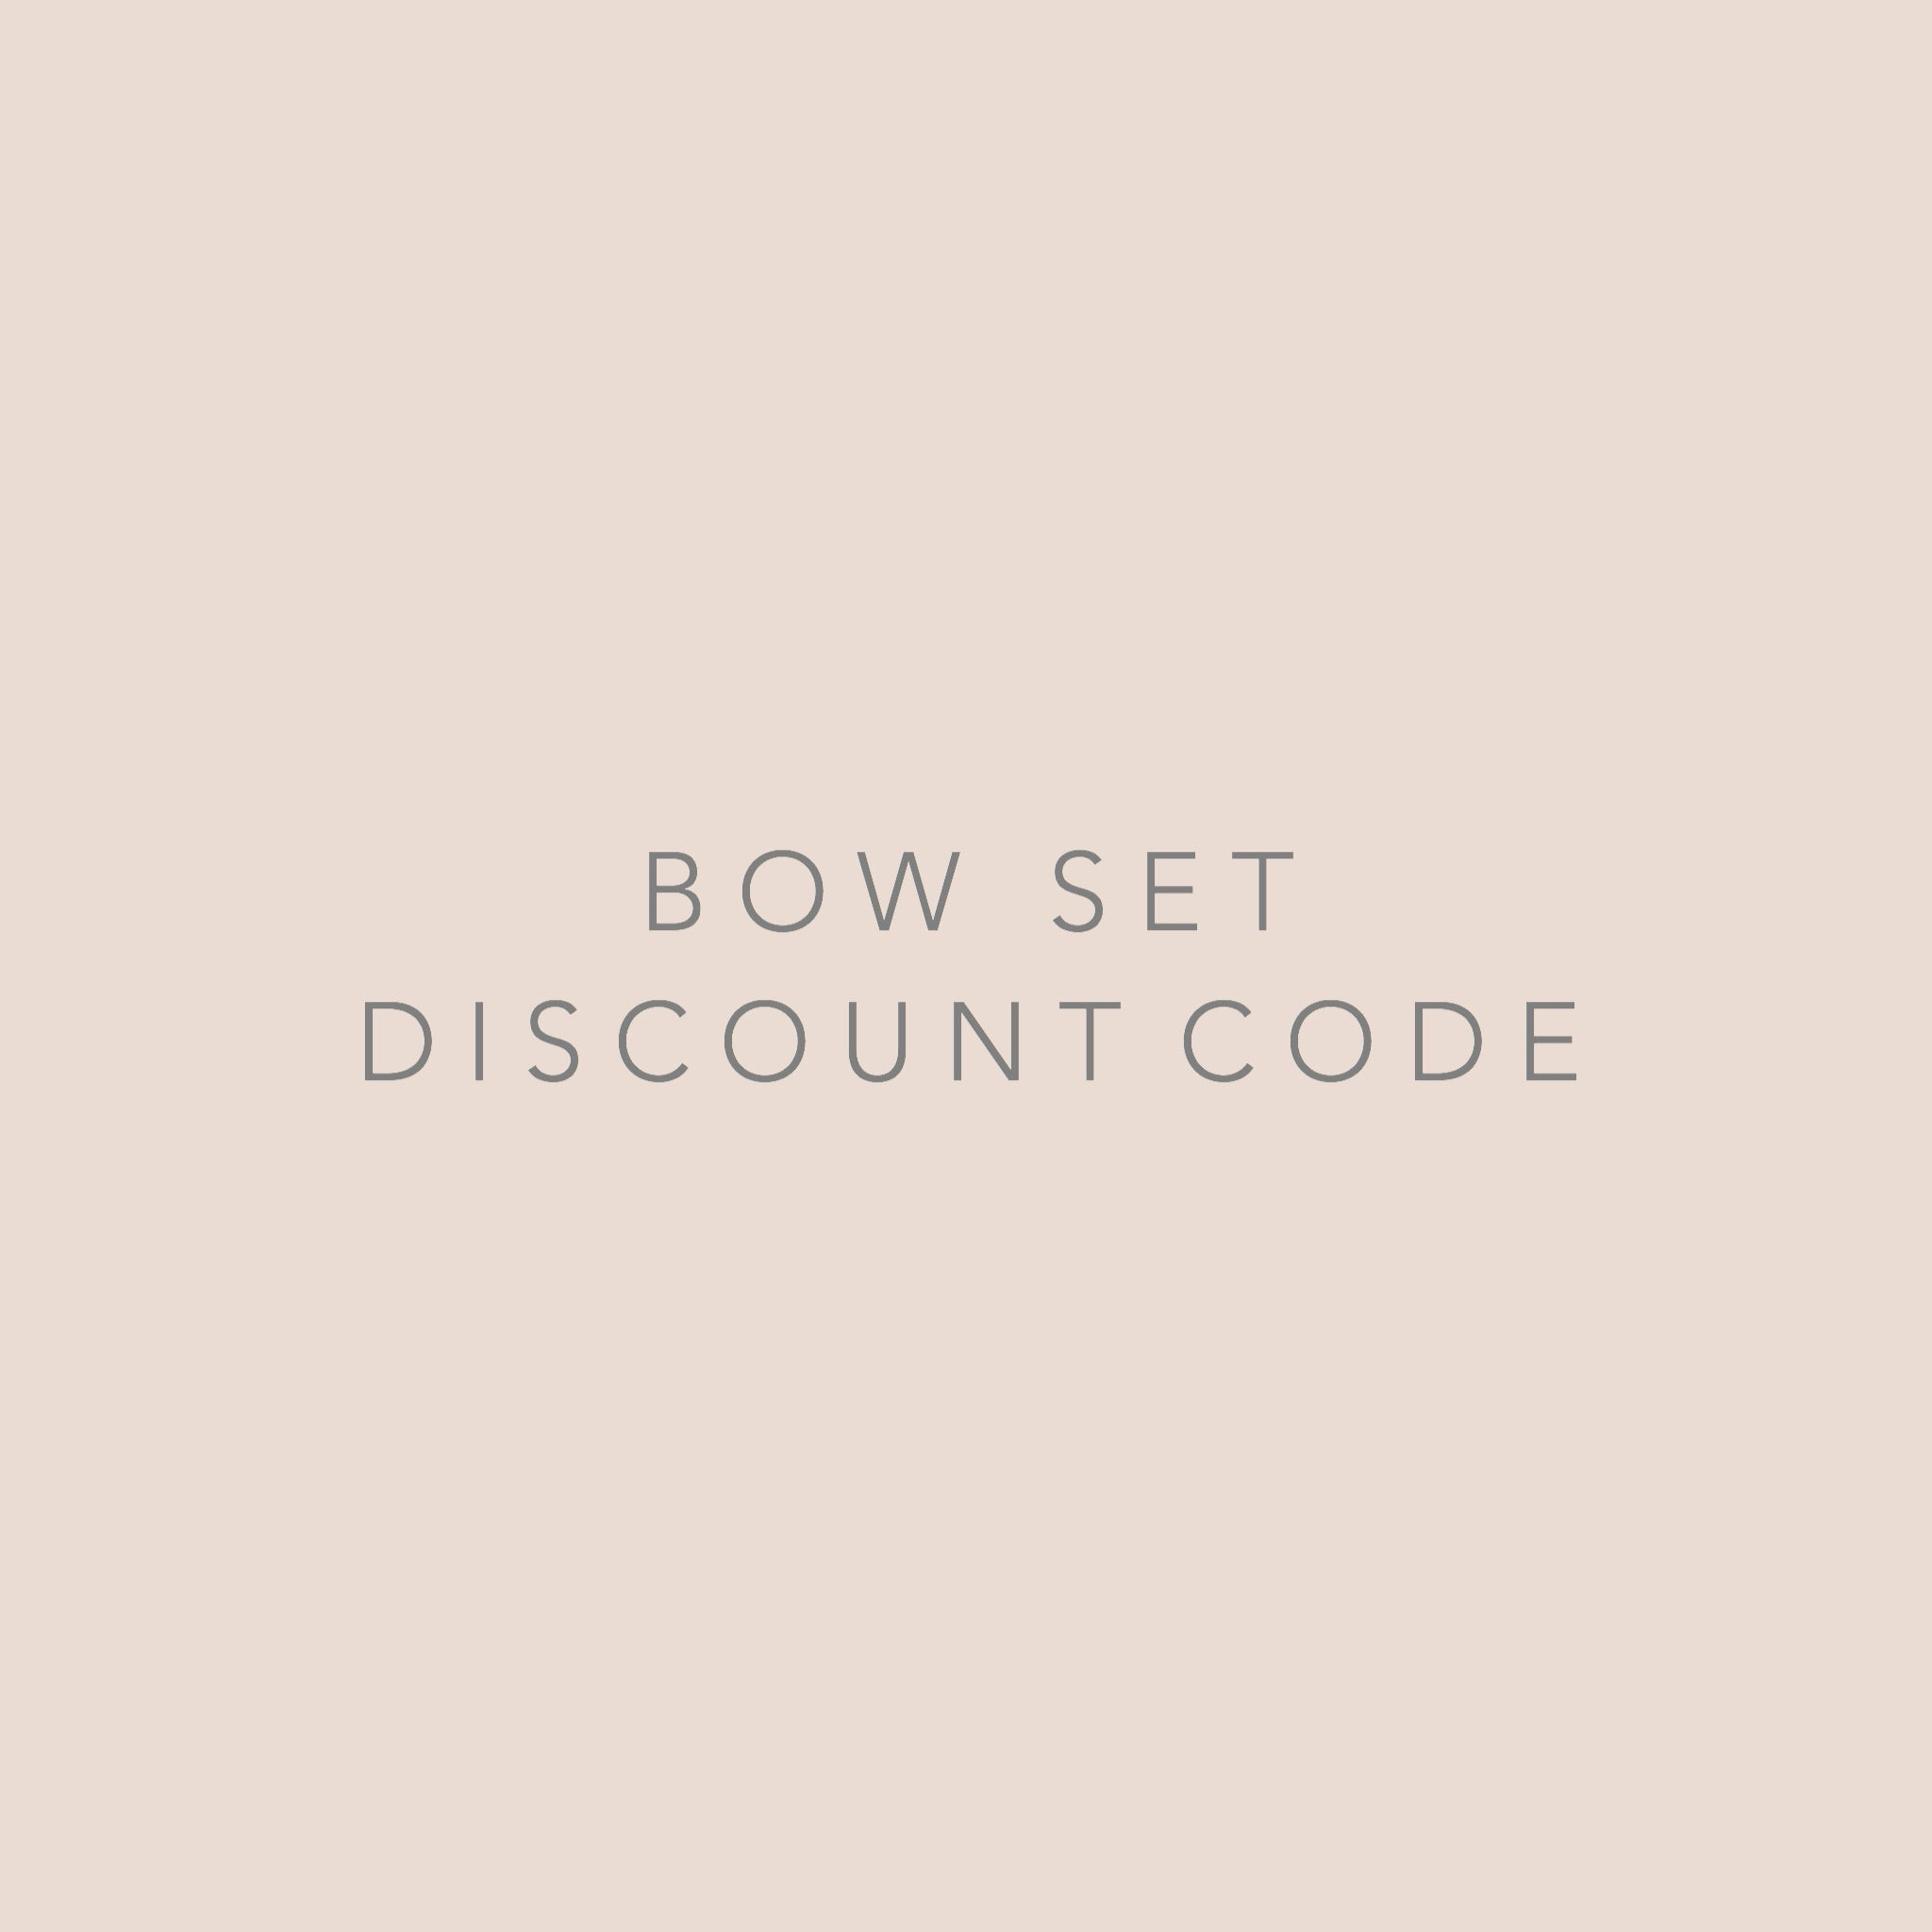 Bow Set Discount Code